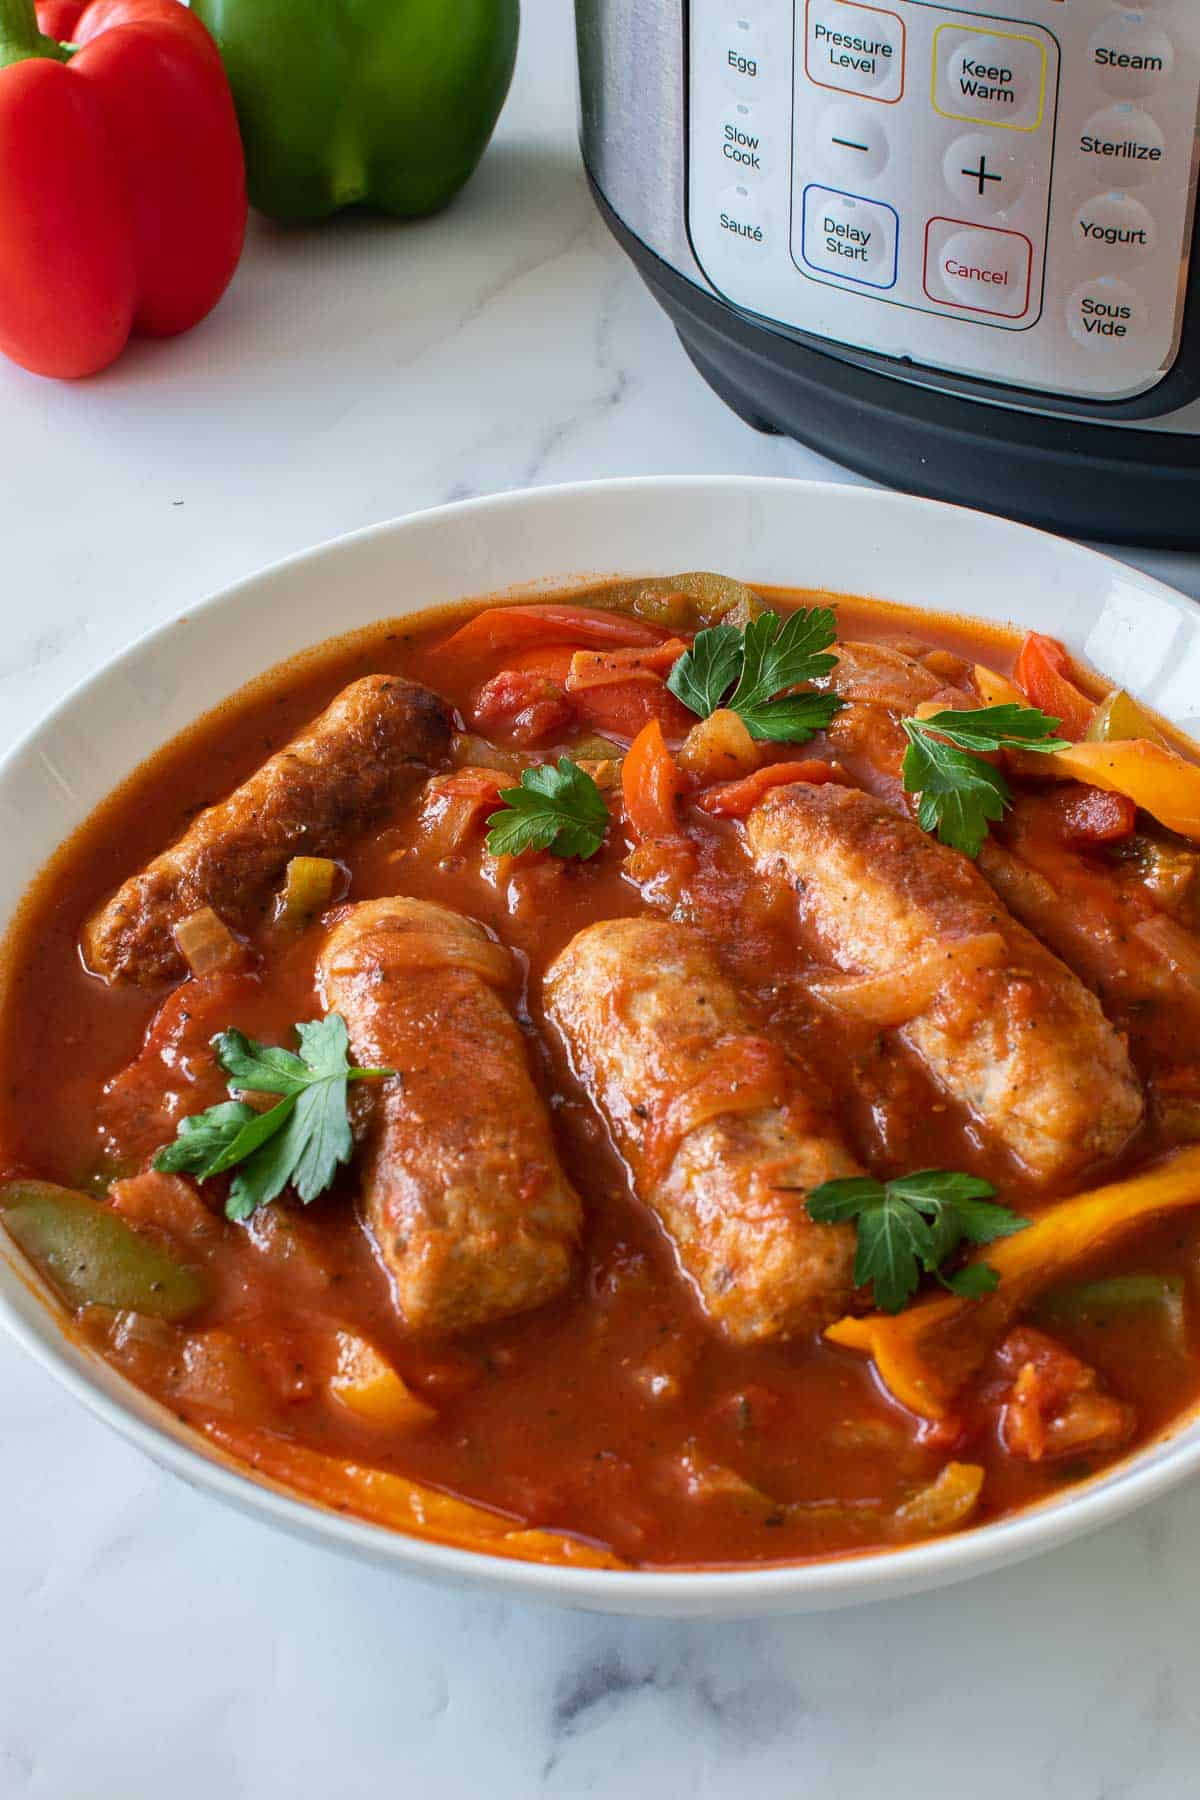 A large bowl of peppers, sausage and tomato sauce.